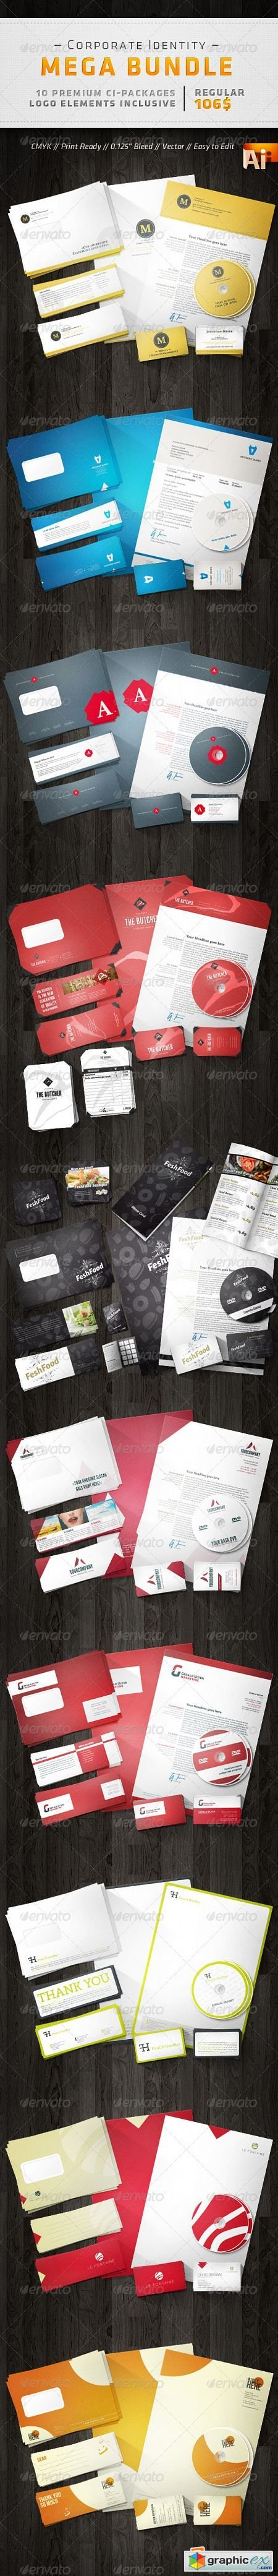 Corporate Design Mega Bundle 2078406